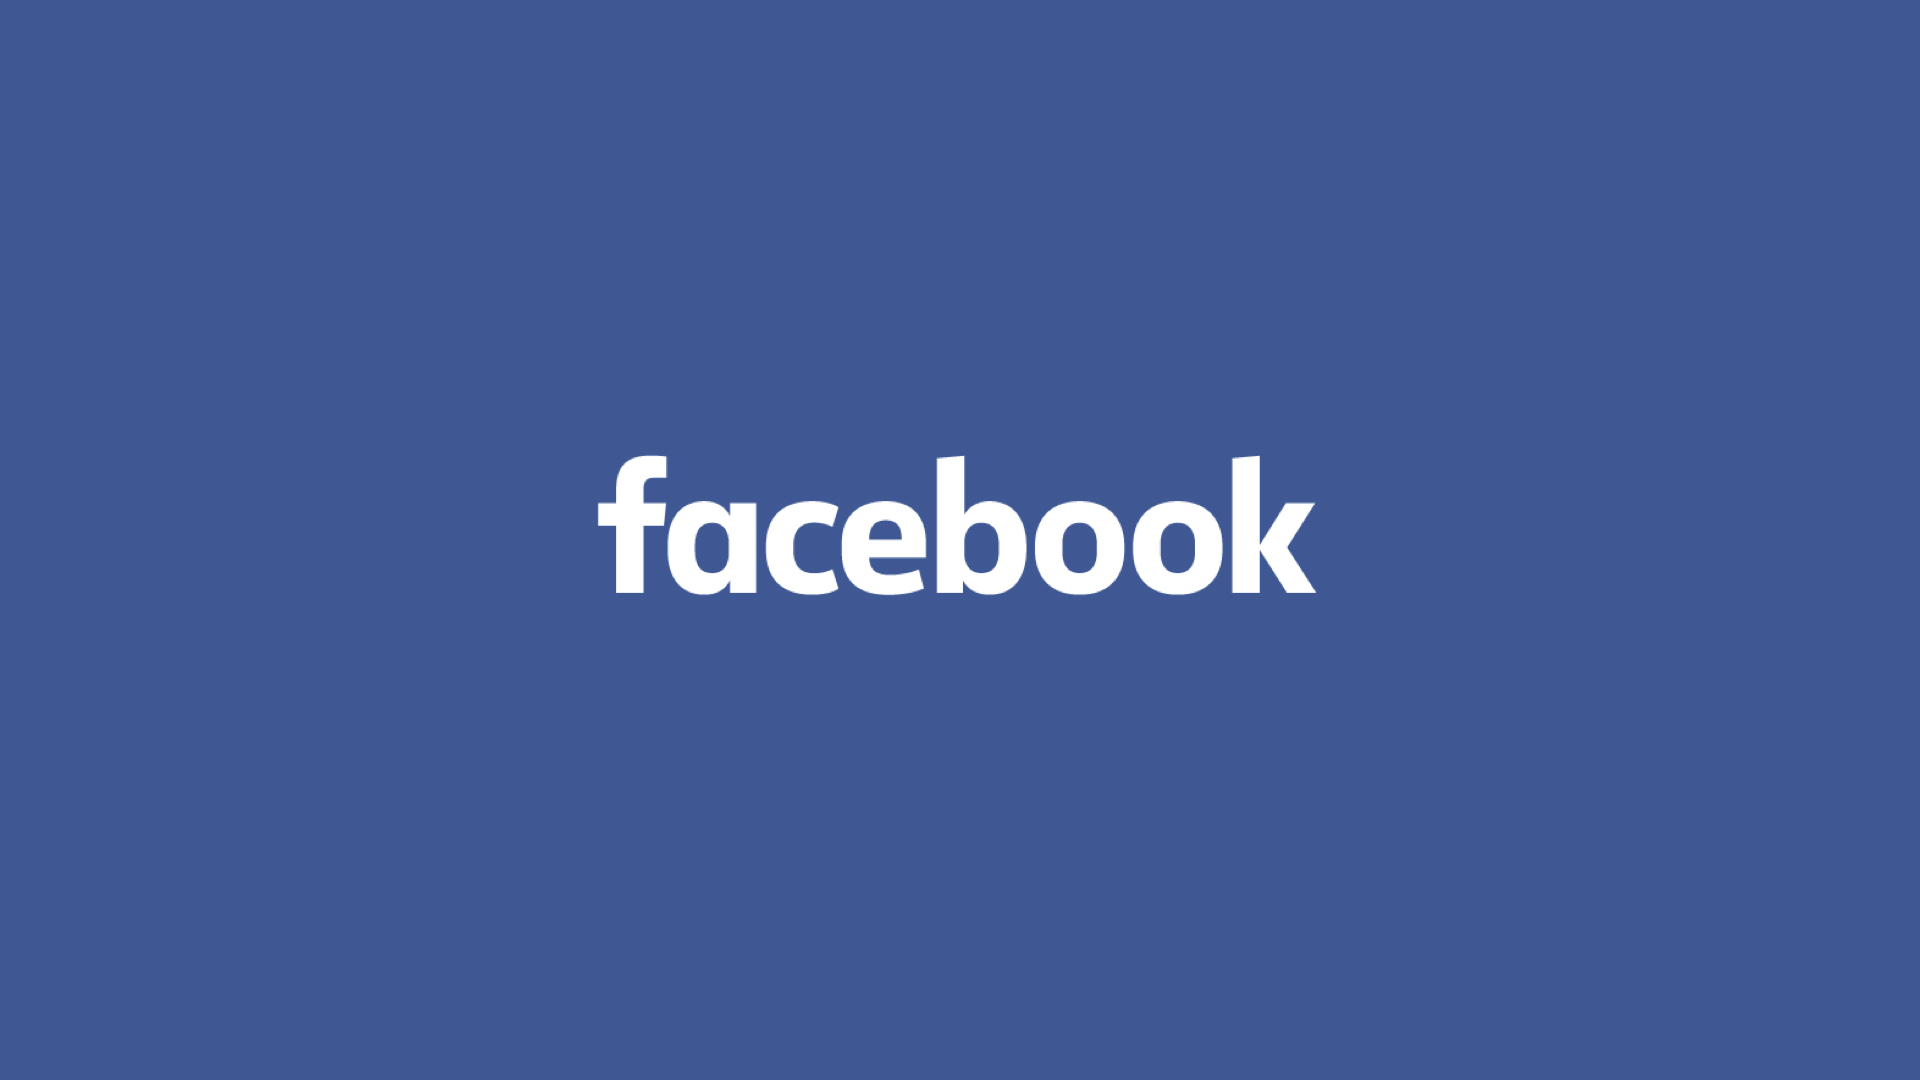 Social media users are reducing their Facebook use, in Australia